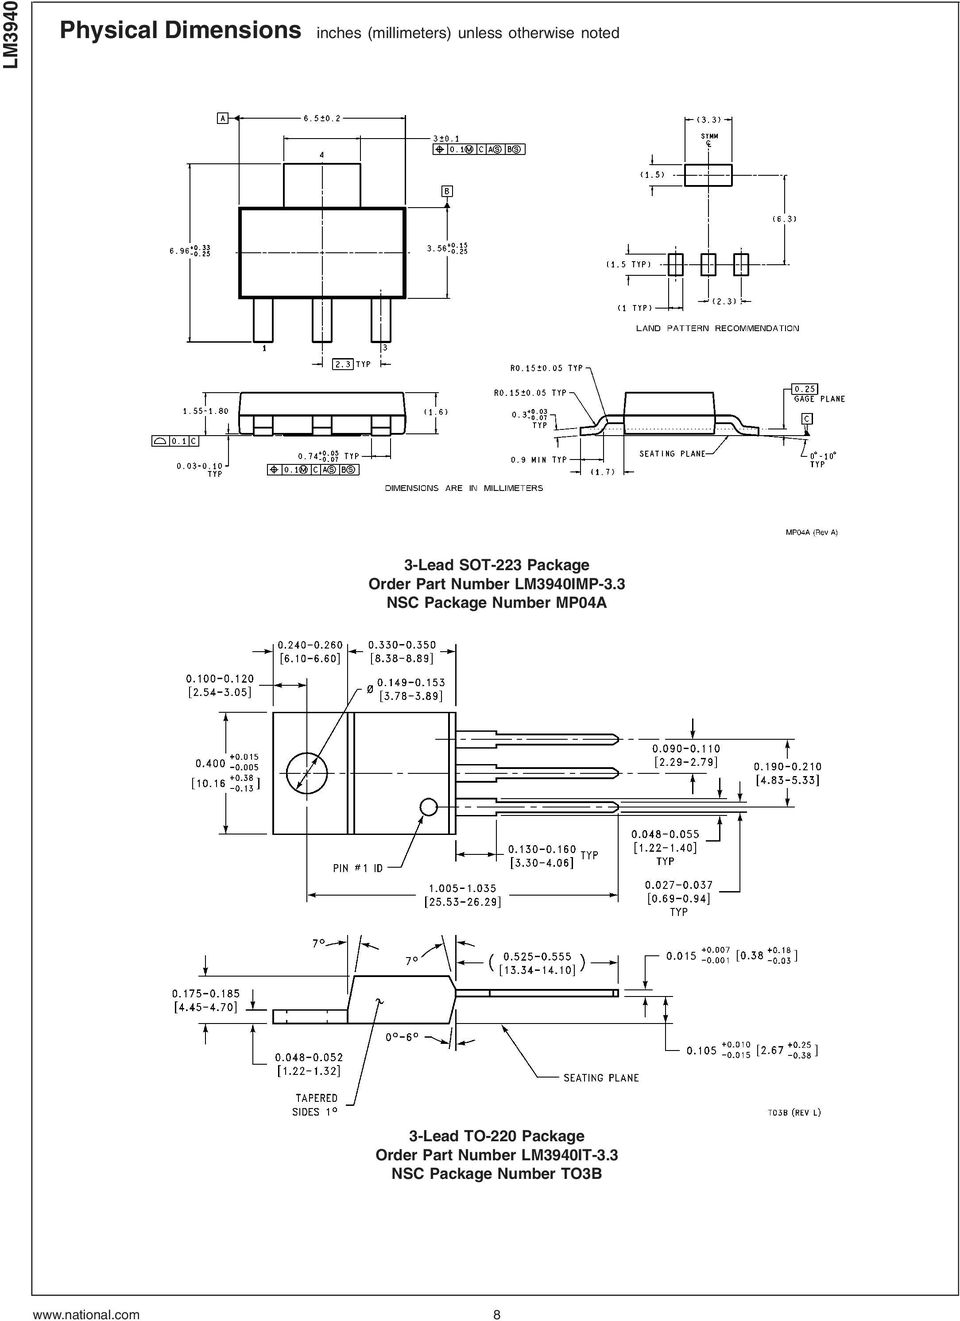 Lm3940 1a Low Dropout Regulator For 5v To 33v Conversion Pdf Very Simple Lead Acid Battery Charger With Pb137 3 Nsc Package Number Mp04a 220 Order Part